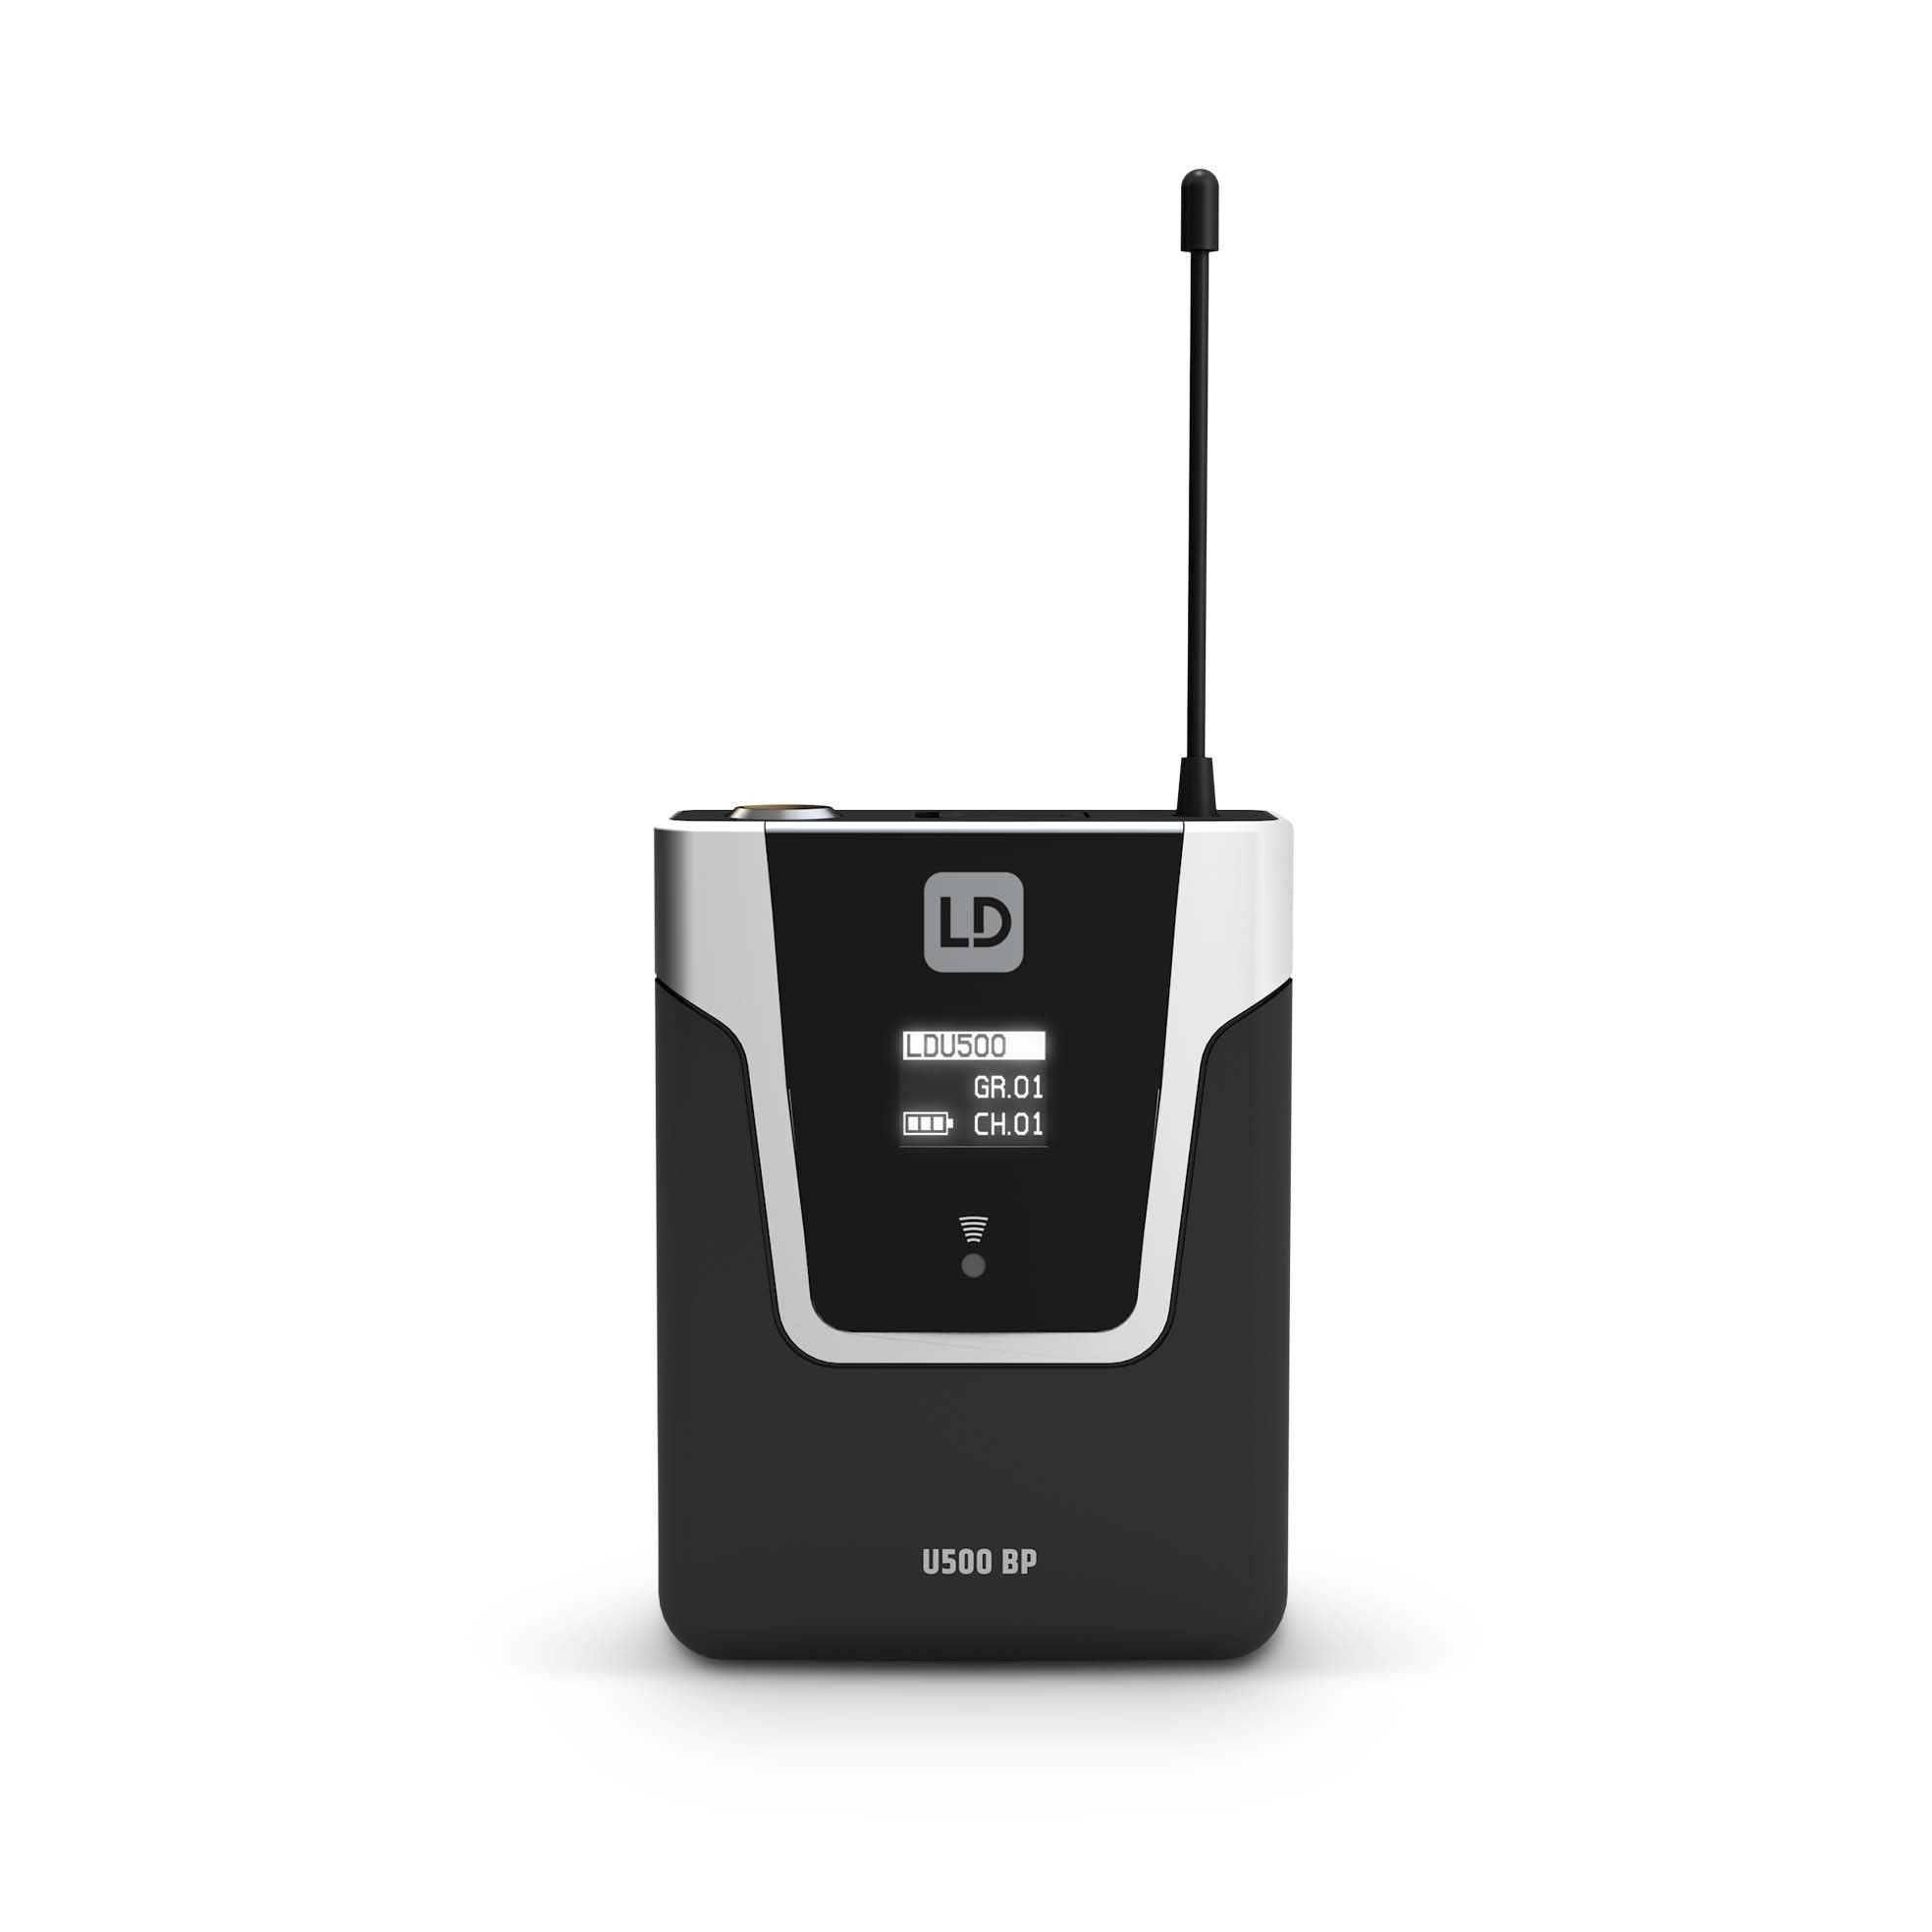 U506 UK BPHH 2 Wireless Microphone System with 2 x  Bodypack and 2 x Headset